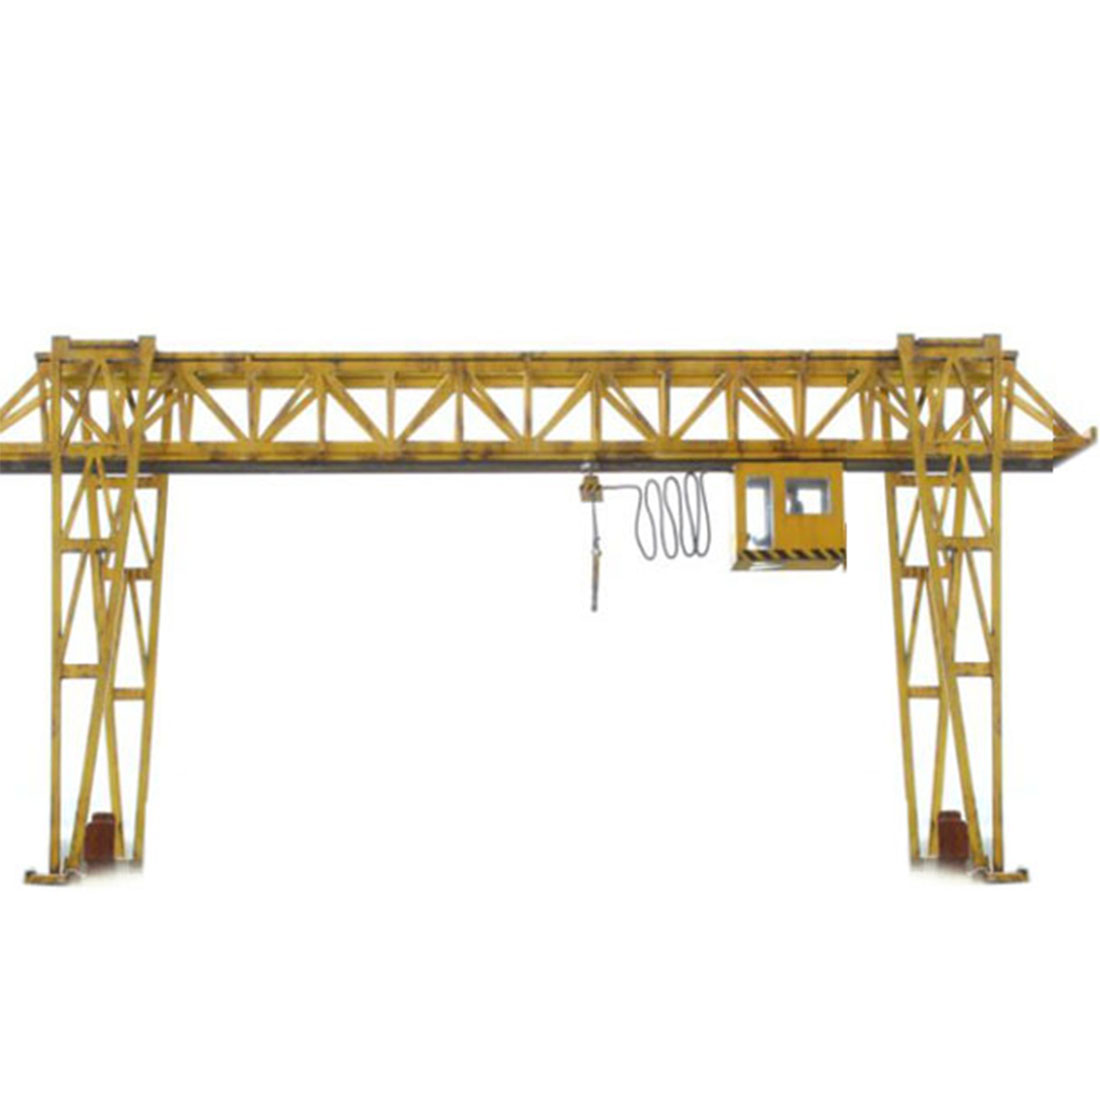 1:87 HO Scale Miniature E5 Crane Model Train Architectural Scene Sand Table Railway Accessories Model Building Kits - Grey image